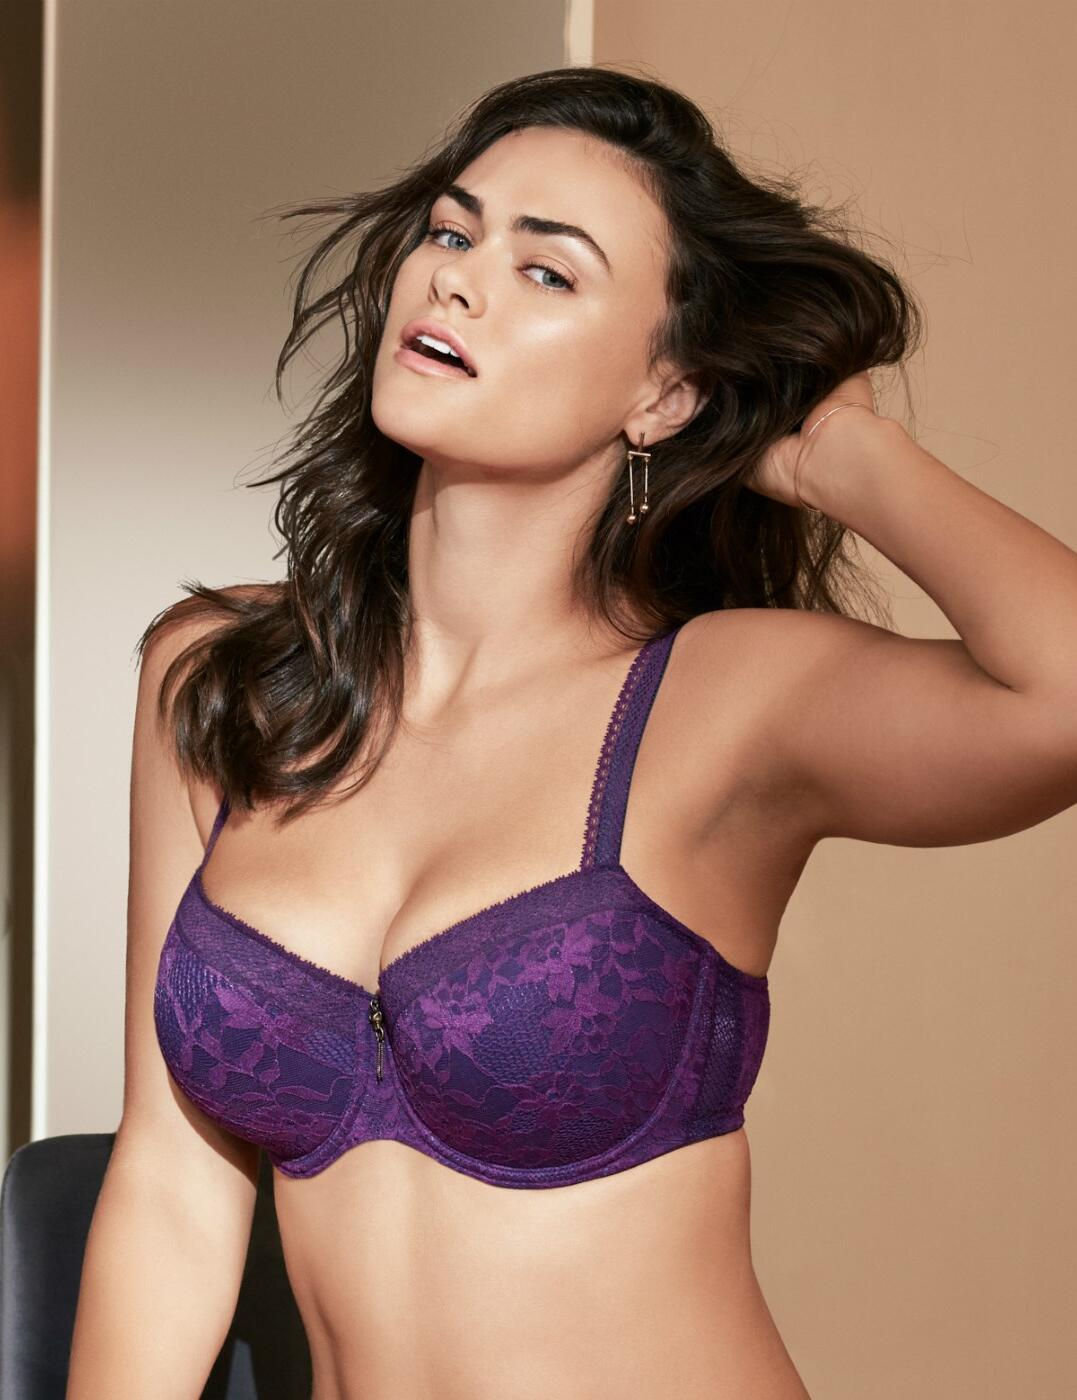 0241572/0241573 Prima Donna Twist Tough Girl Underwired Padded Balcony Bra - 0241572/0241573 Purple Sparkle